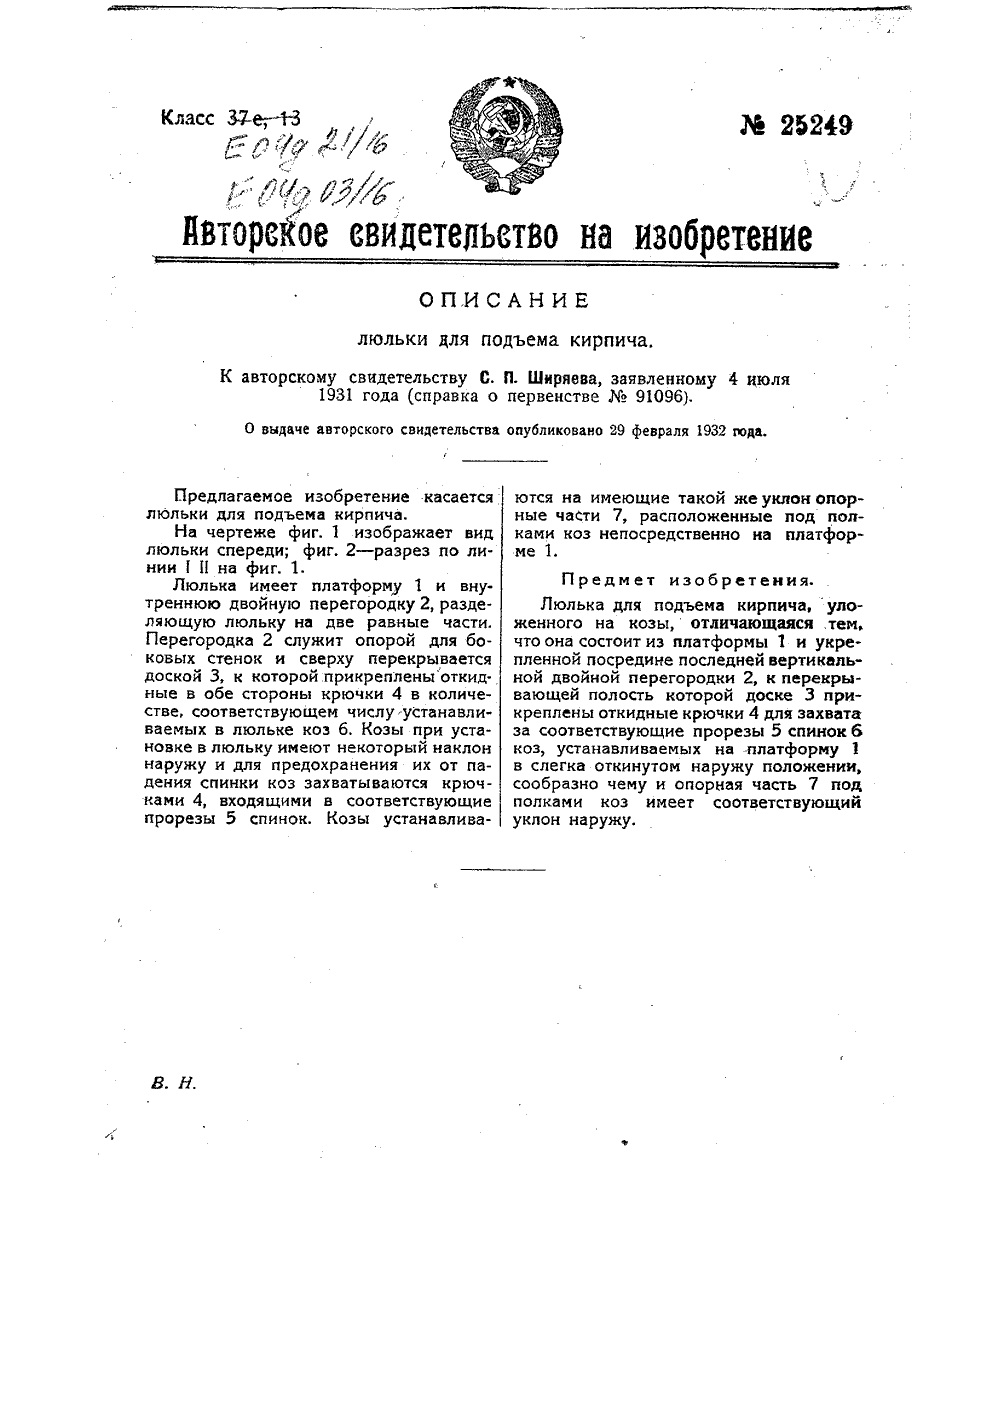 http://images.vfl.ru/ii/1506651473/c7be1632/18785381.png